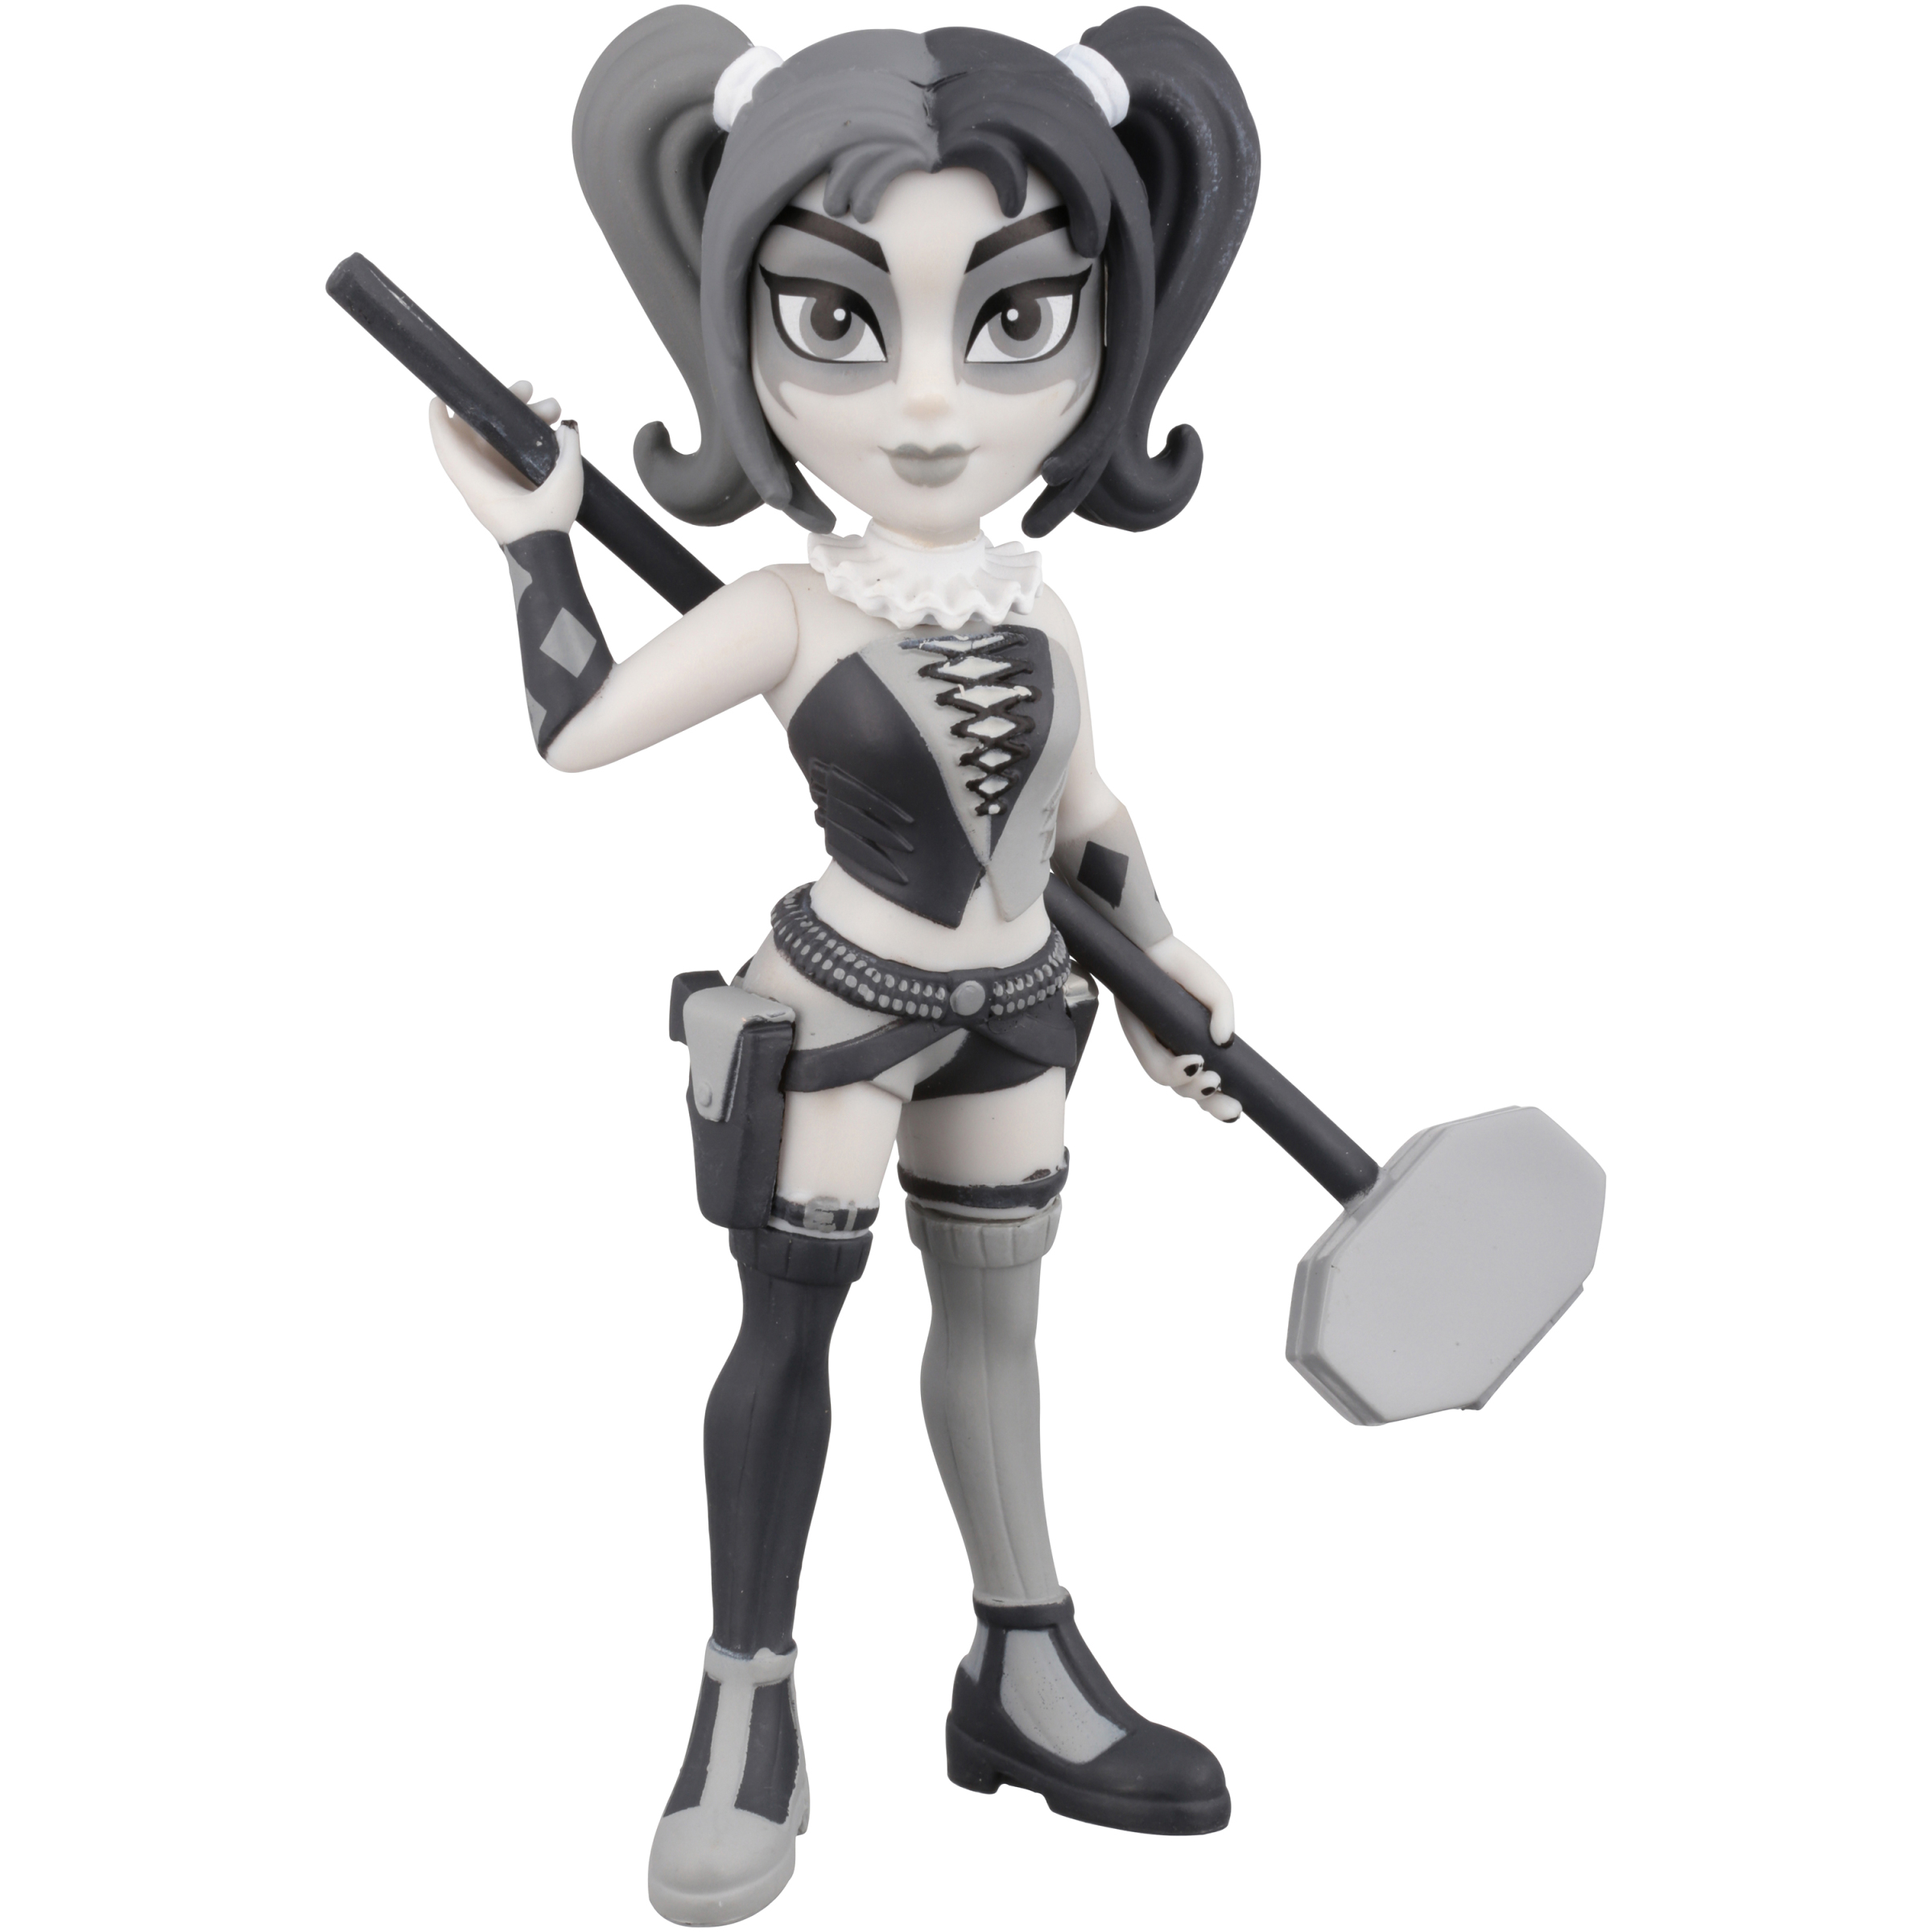 Funko Rock Candy: DC Harley Quinn Black and White Walmart Exclusive by Funko